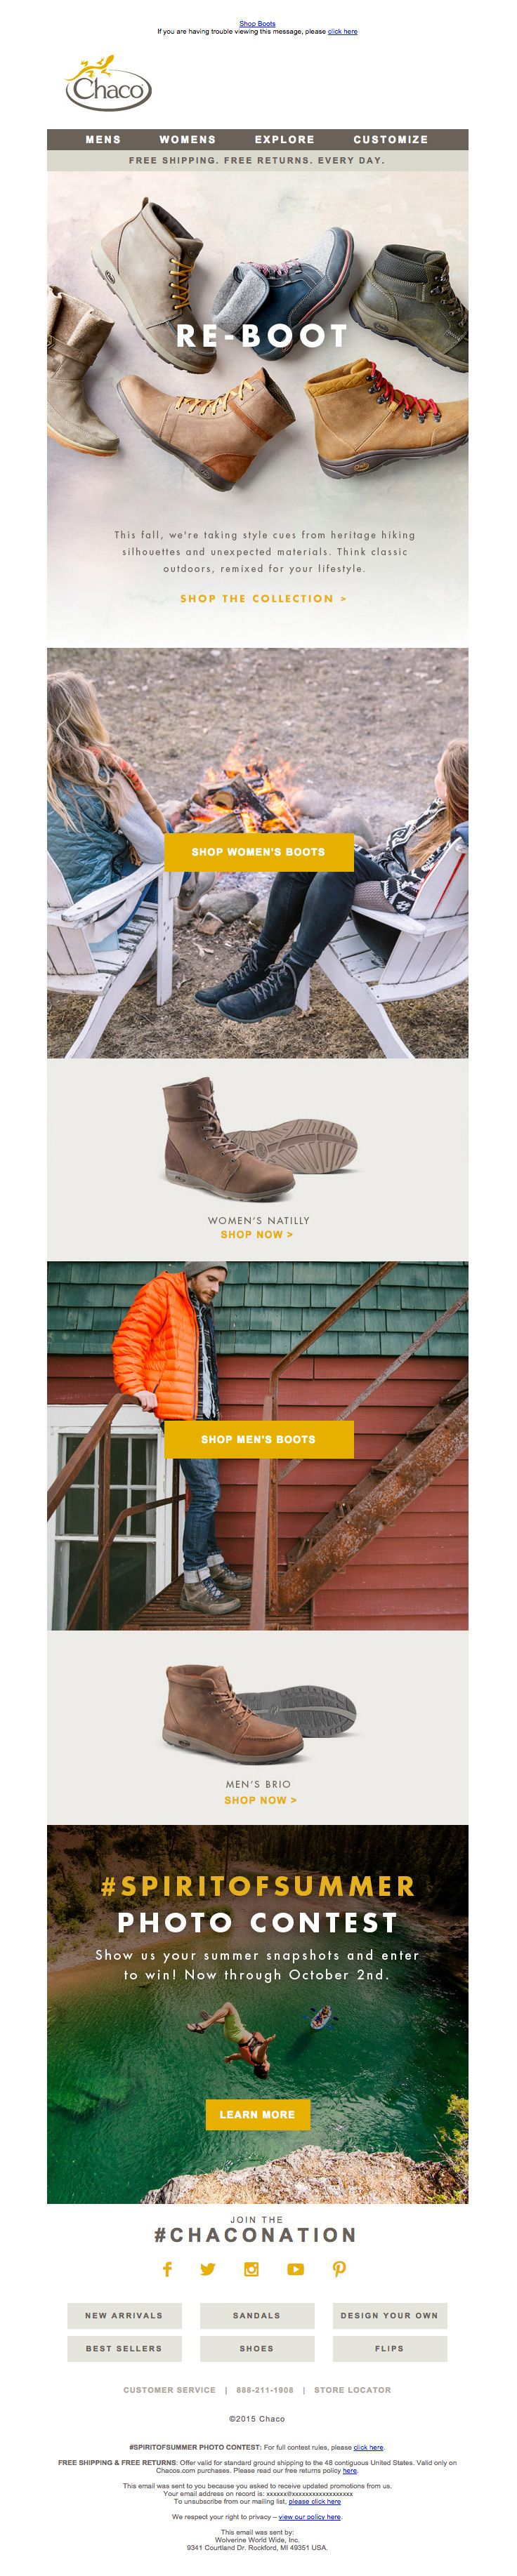 @chaco sent this email with the subject line: New Boots for Fall - I think Chaco has done a nice job of creating clean blocks of photos with CTAs that drive sales. Well done here! Read about this email and find more product sale emails at ReallyGoodEmails.com #ecommerce #productsale